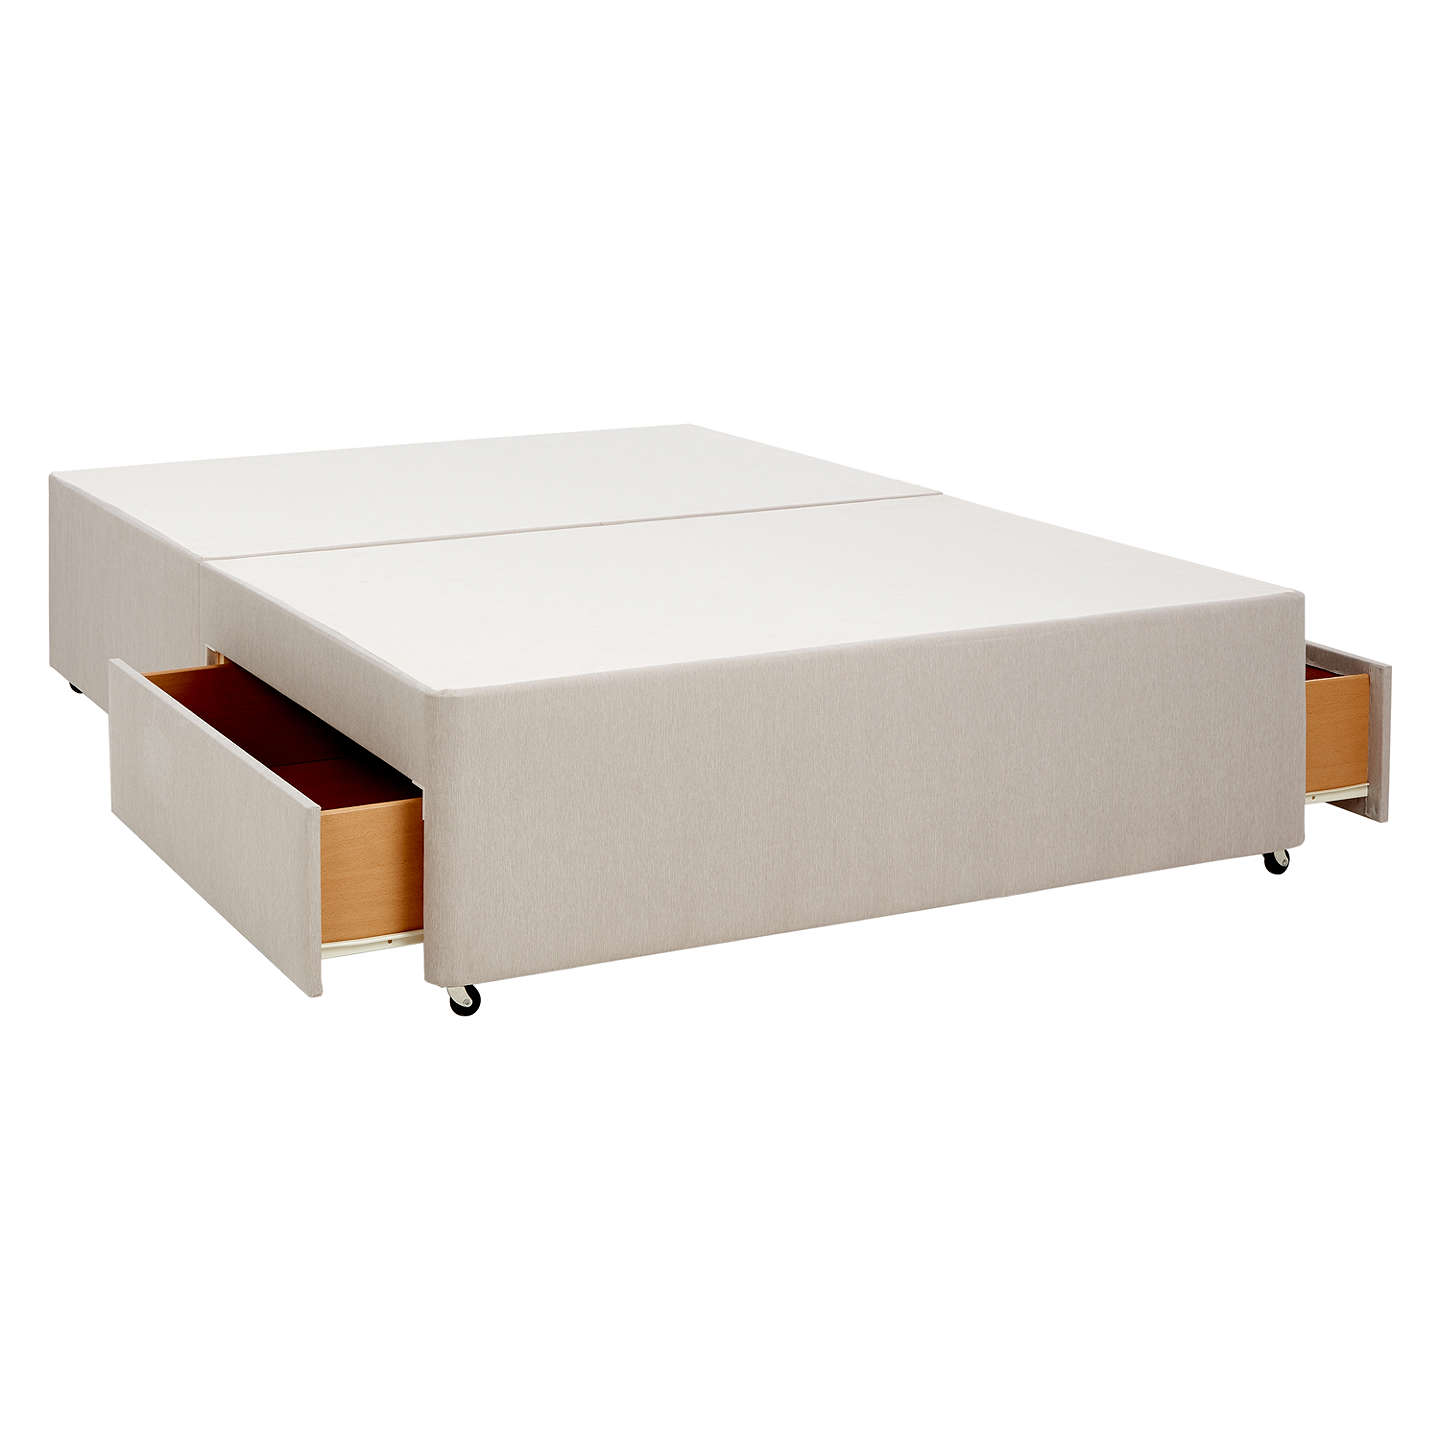 John lewis non sprung two drawer divan storage bed pebble for Small divan beds with storage